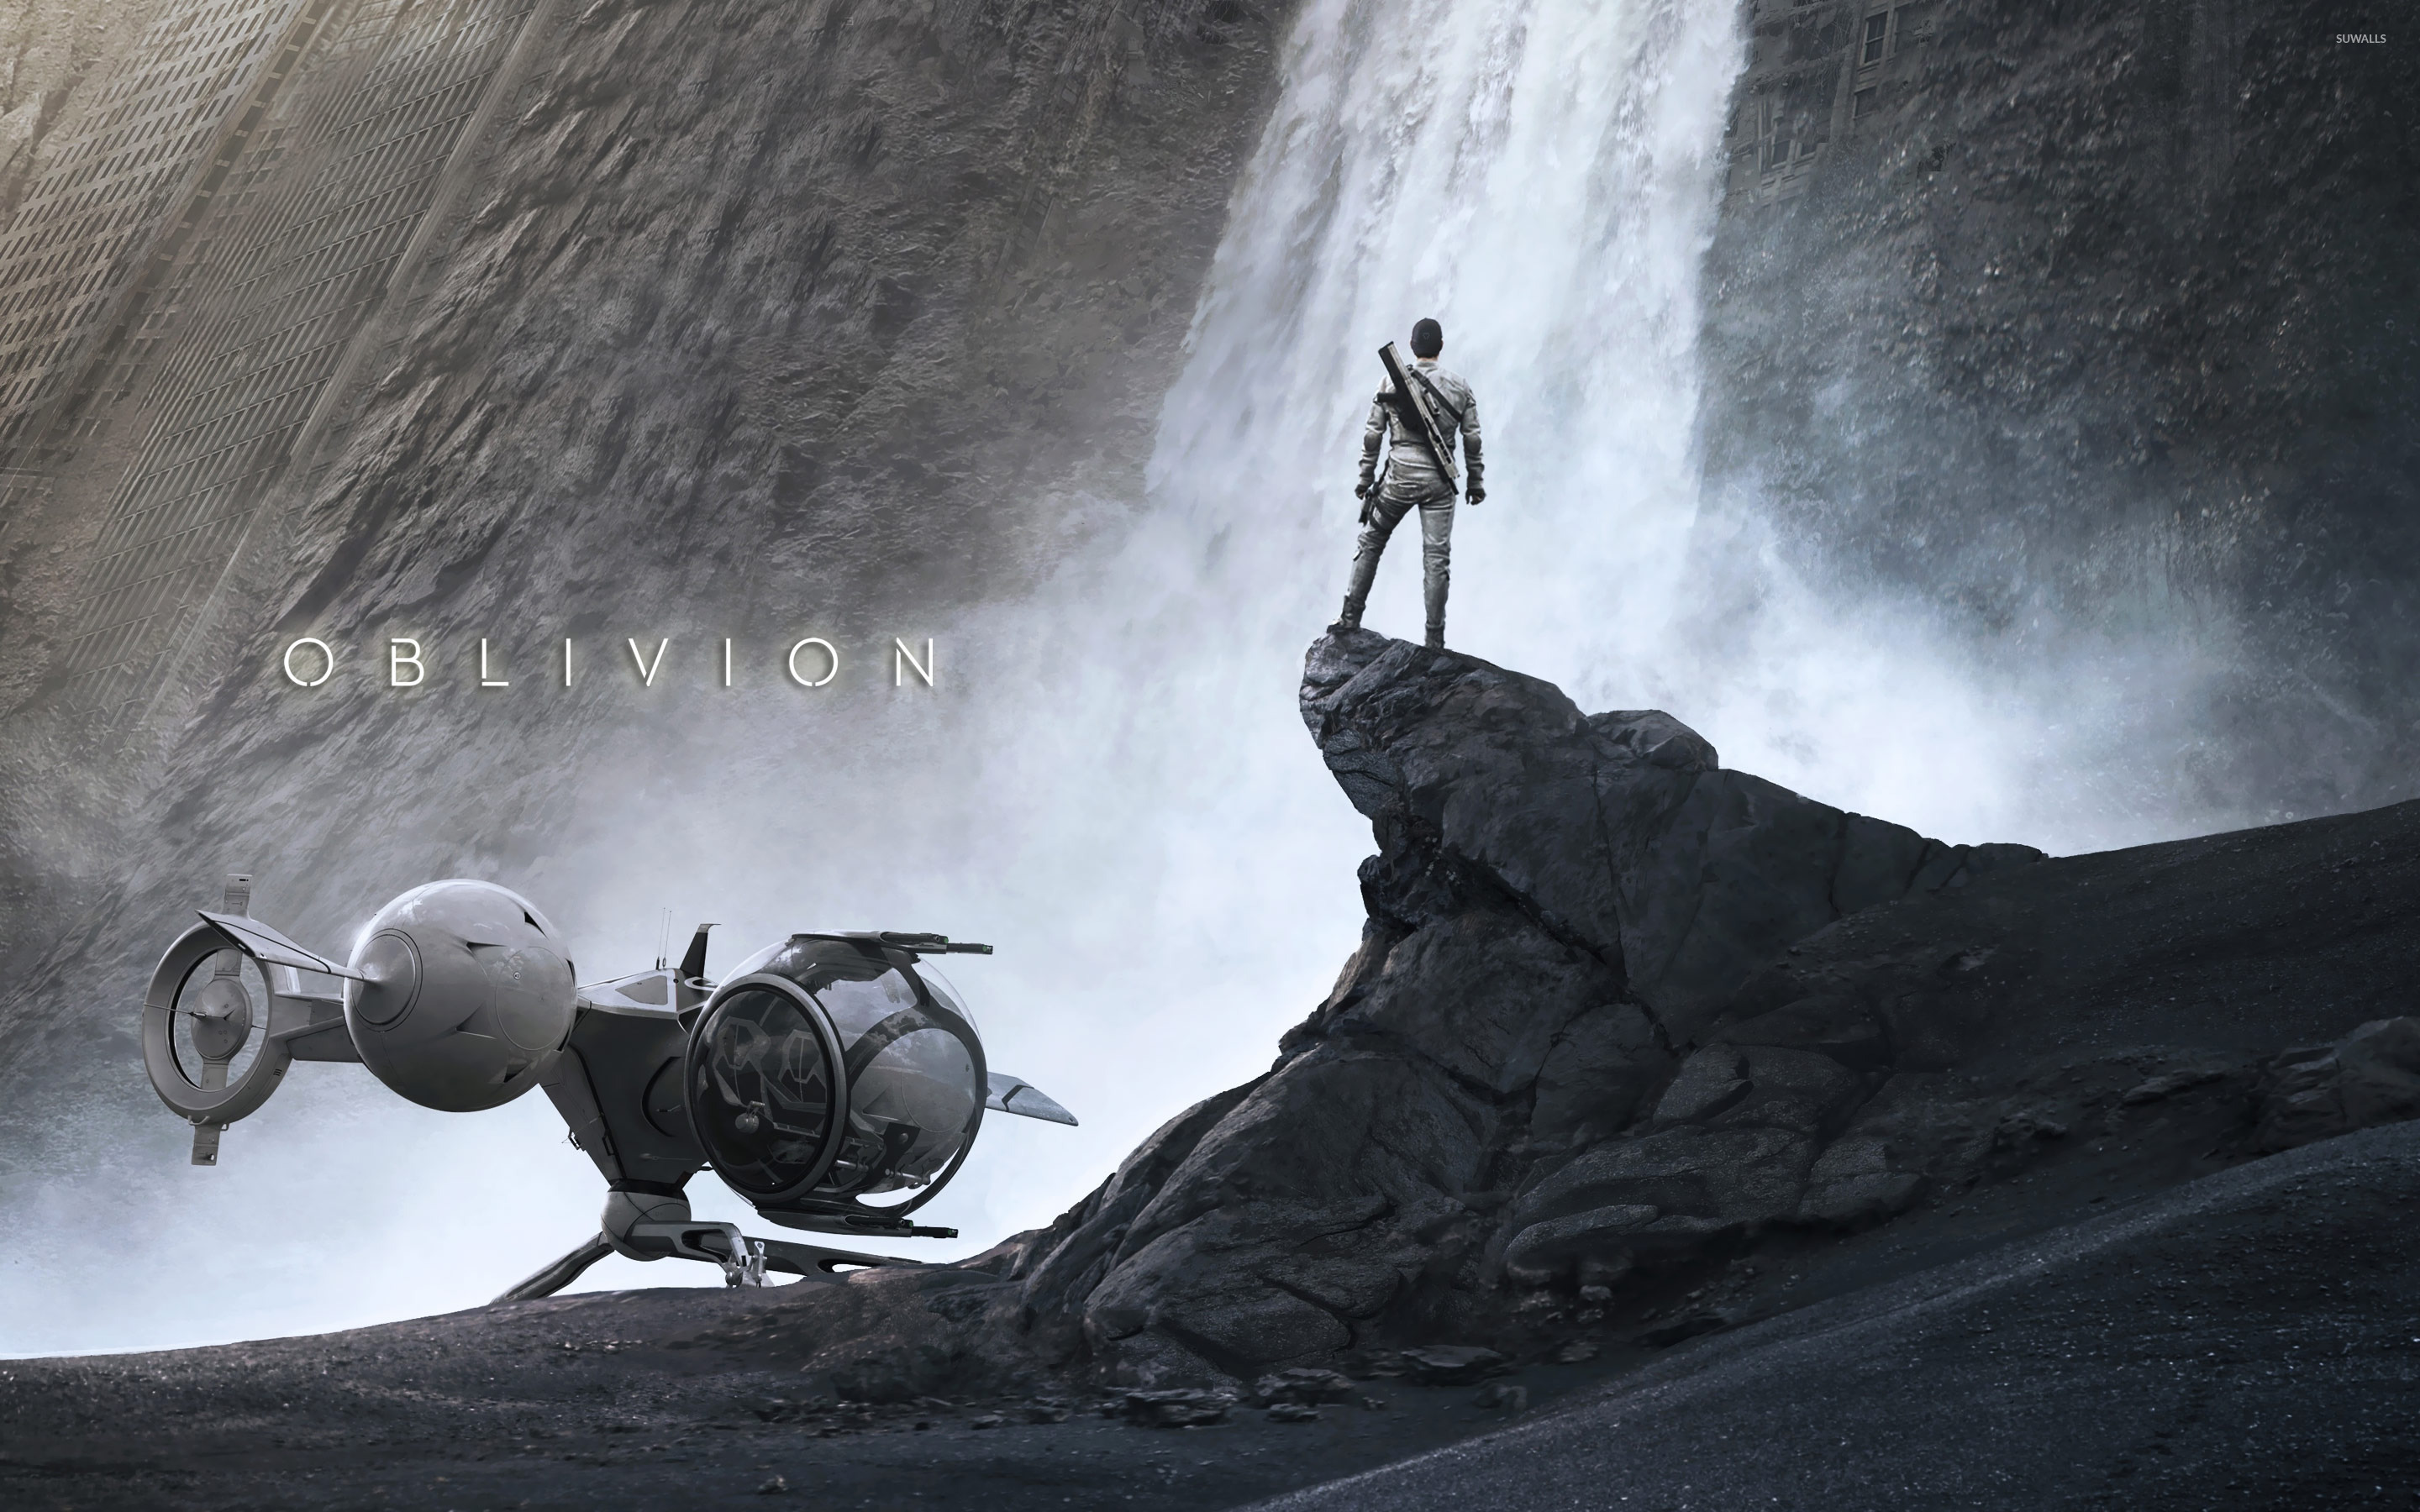 jack harper - oblivion wallpaper - movie wallpapers - #19204